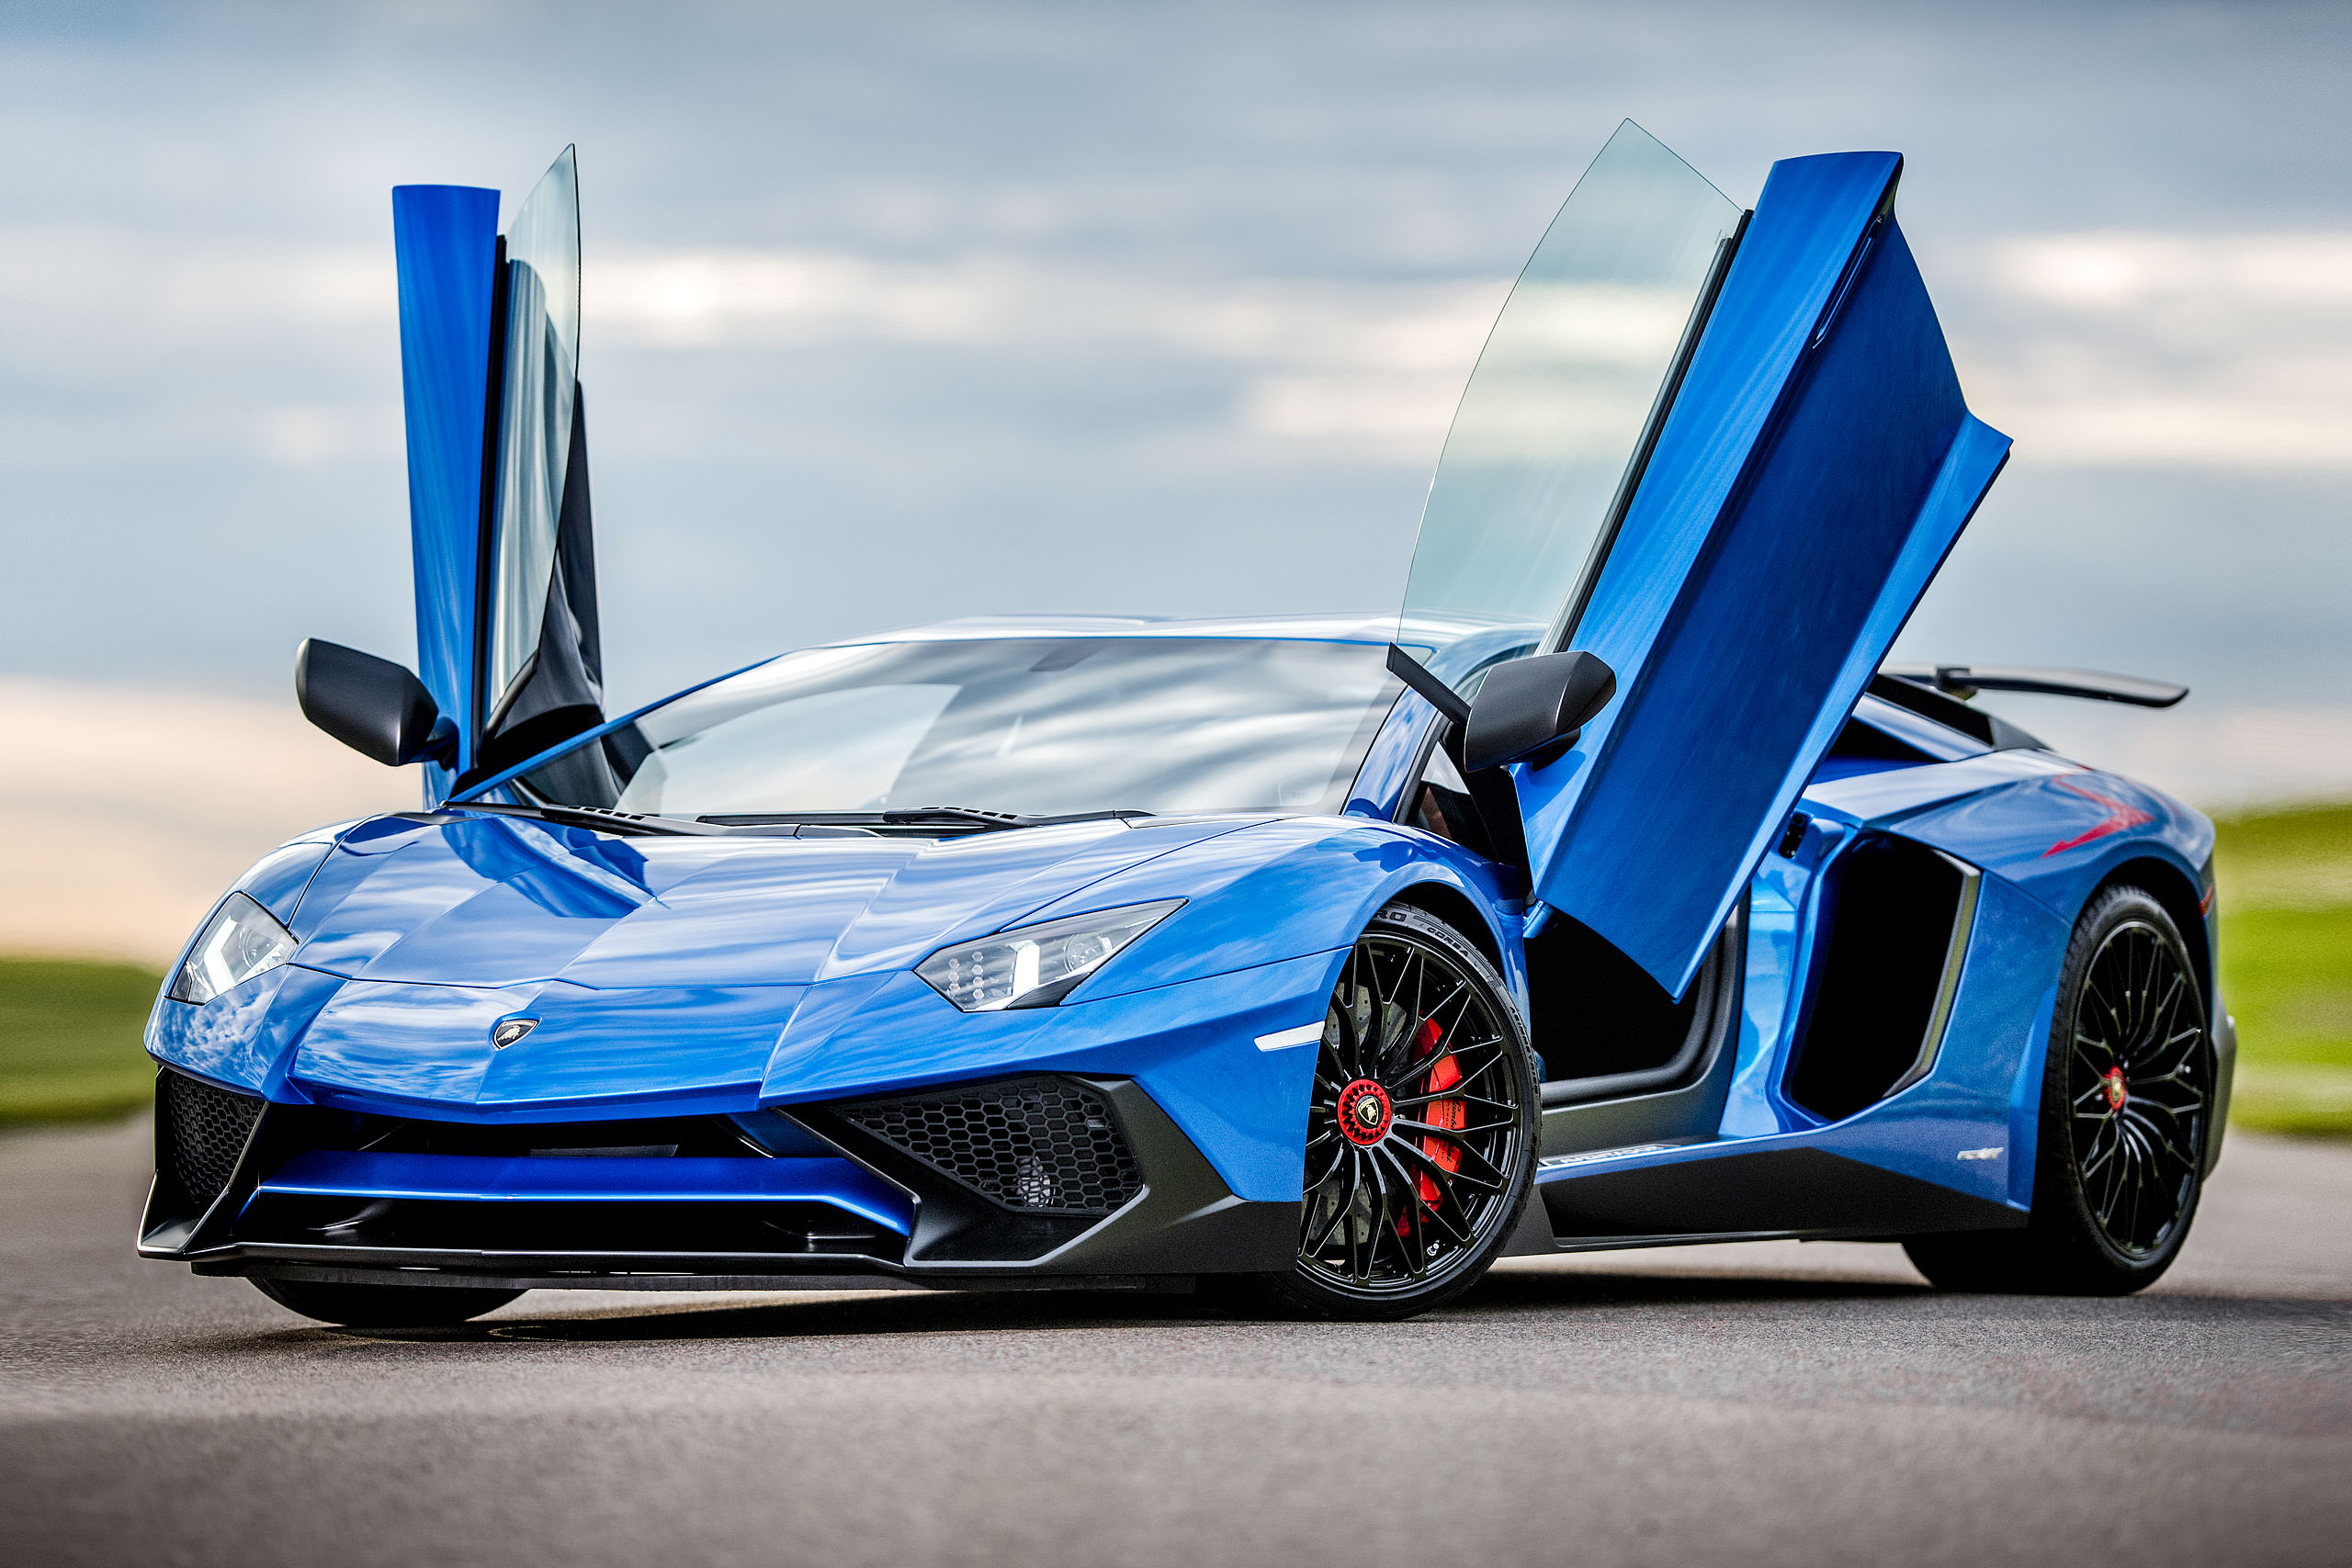 calgary Lamborghini photographer - metallic blue Lamborghini aventador with the doors open parked on a road